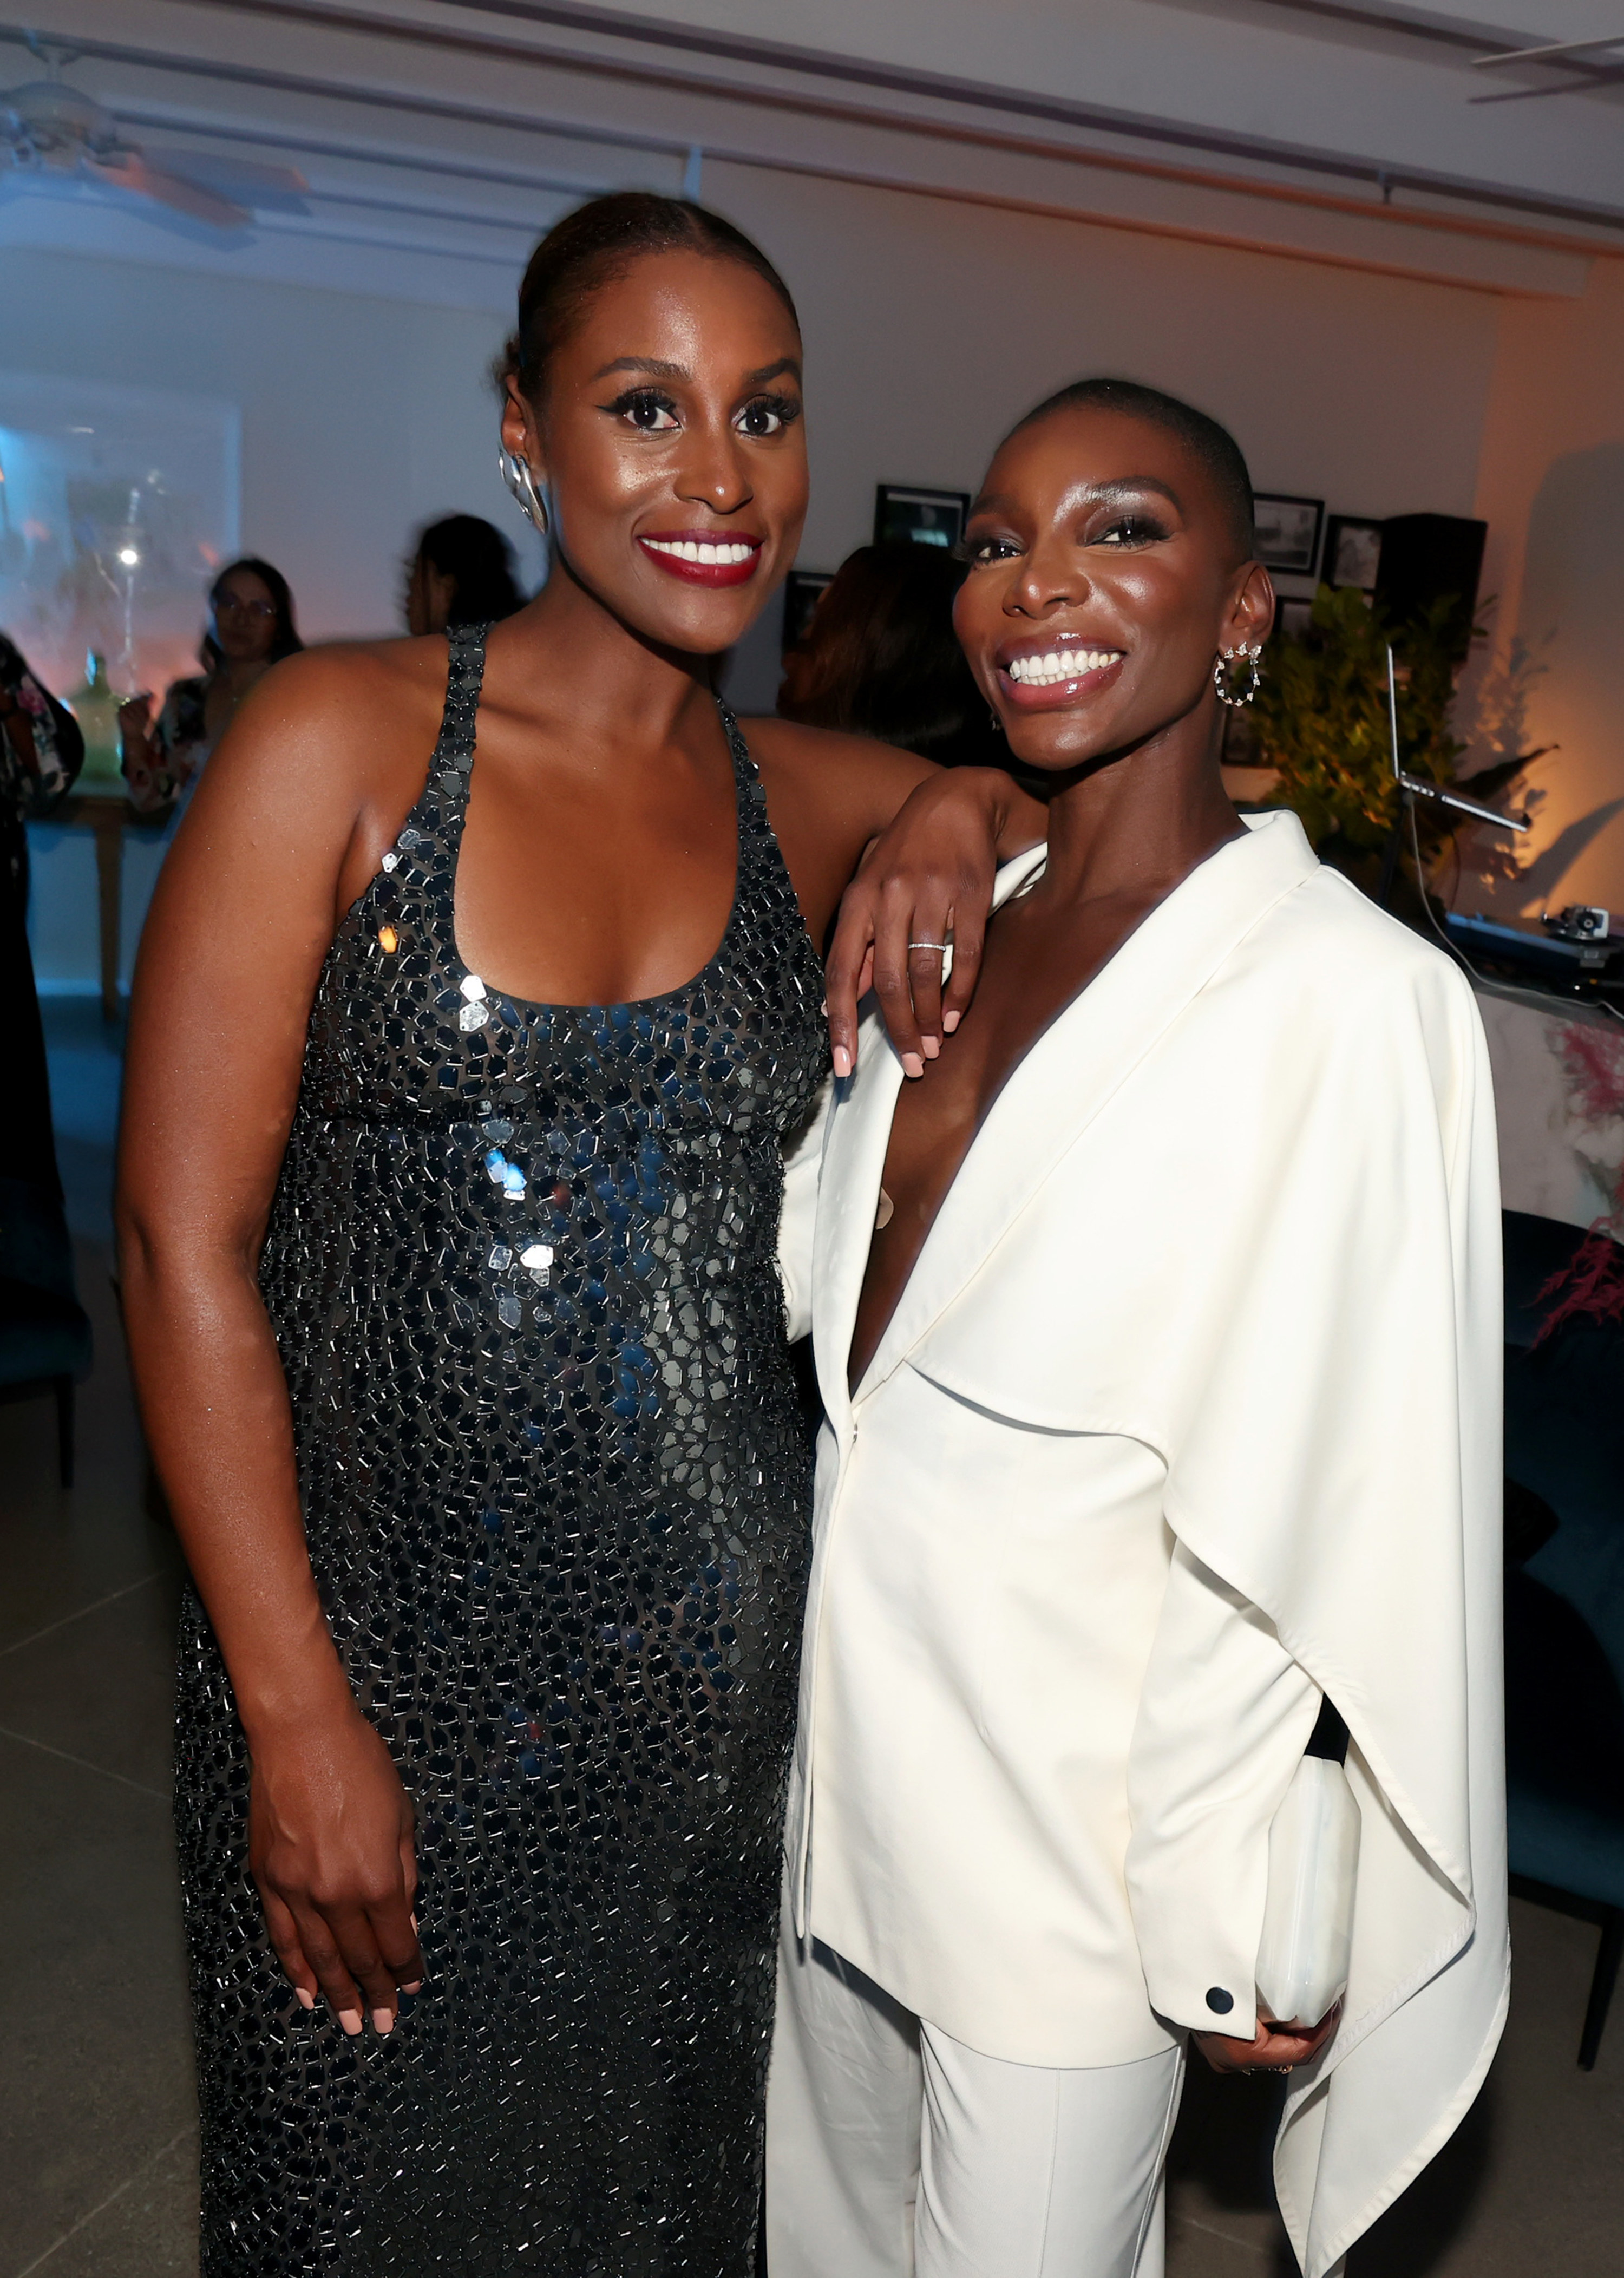 Issa Rae and Michaela standing and smiling at an event